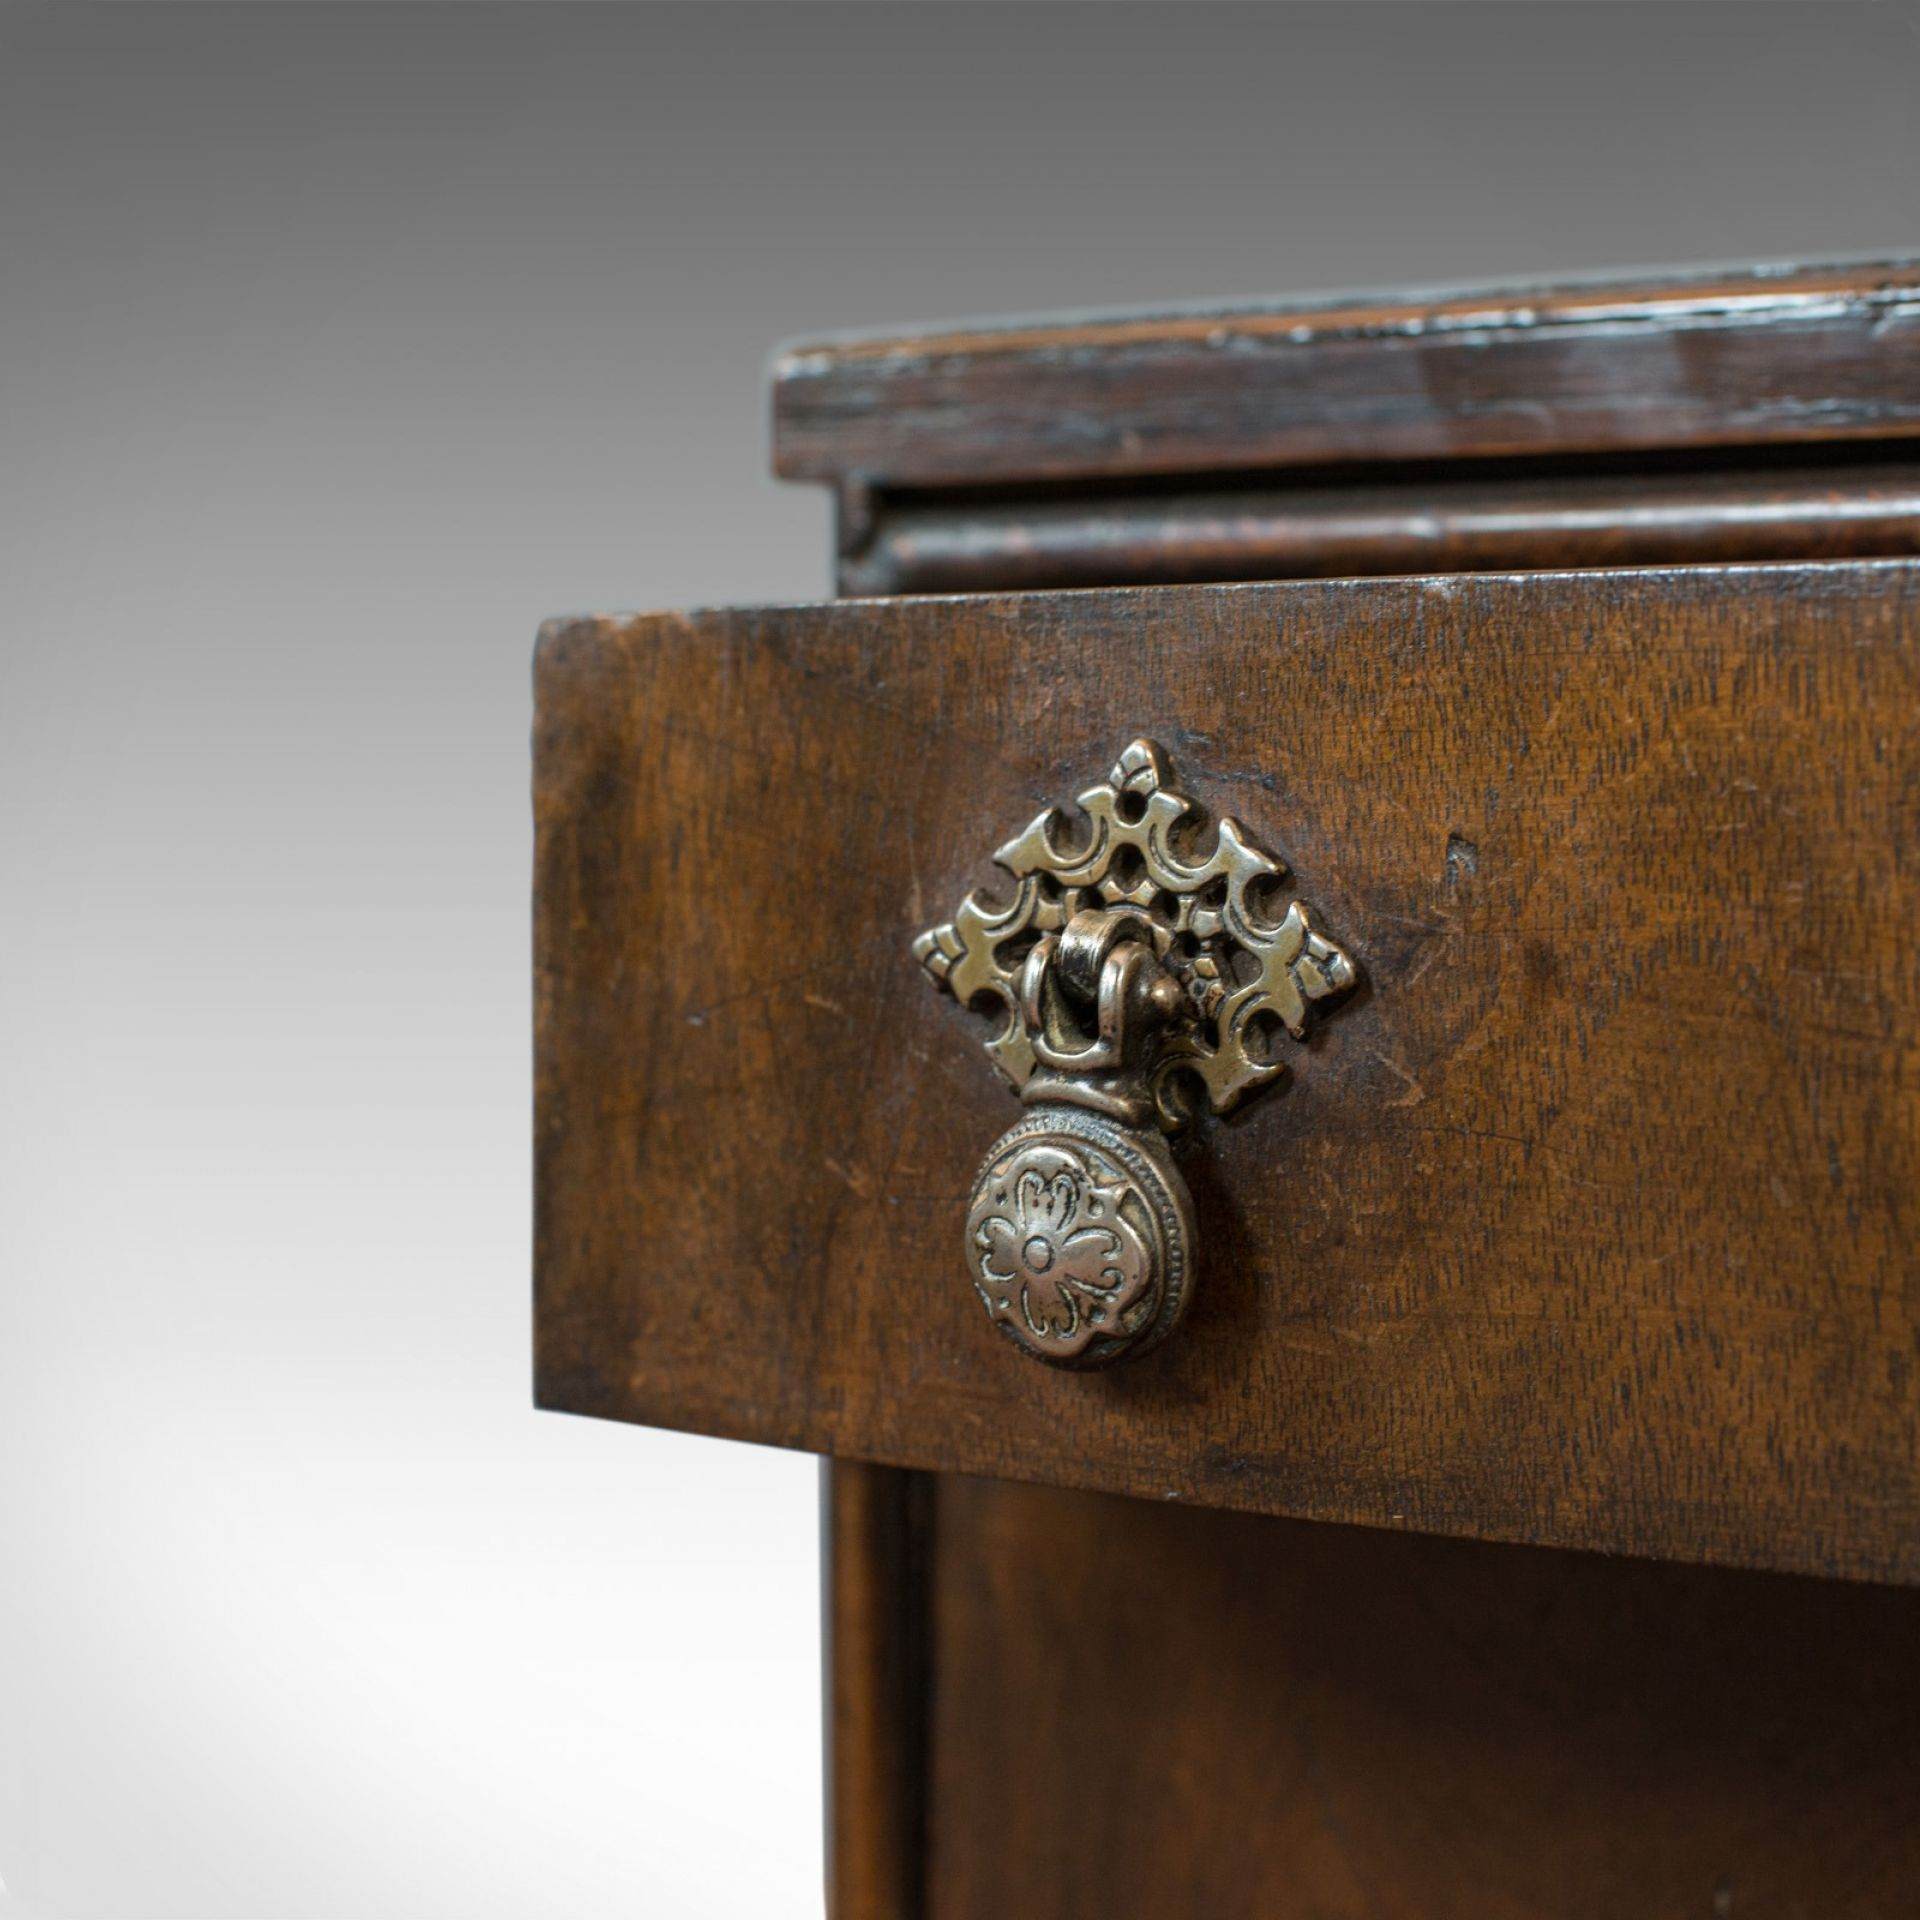 Antique Chest of Drawers, English, Regency, Mahogany, Chest, Early 19th Century